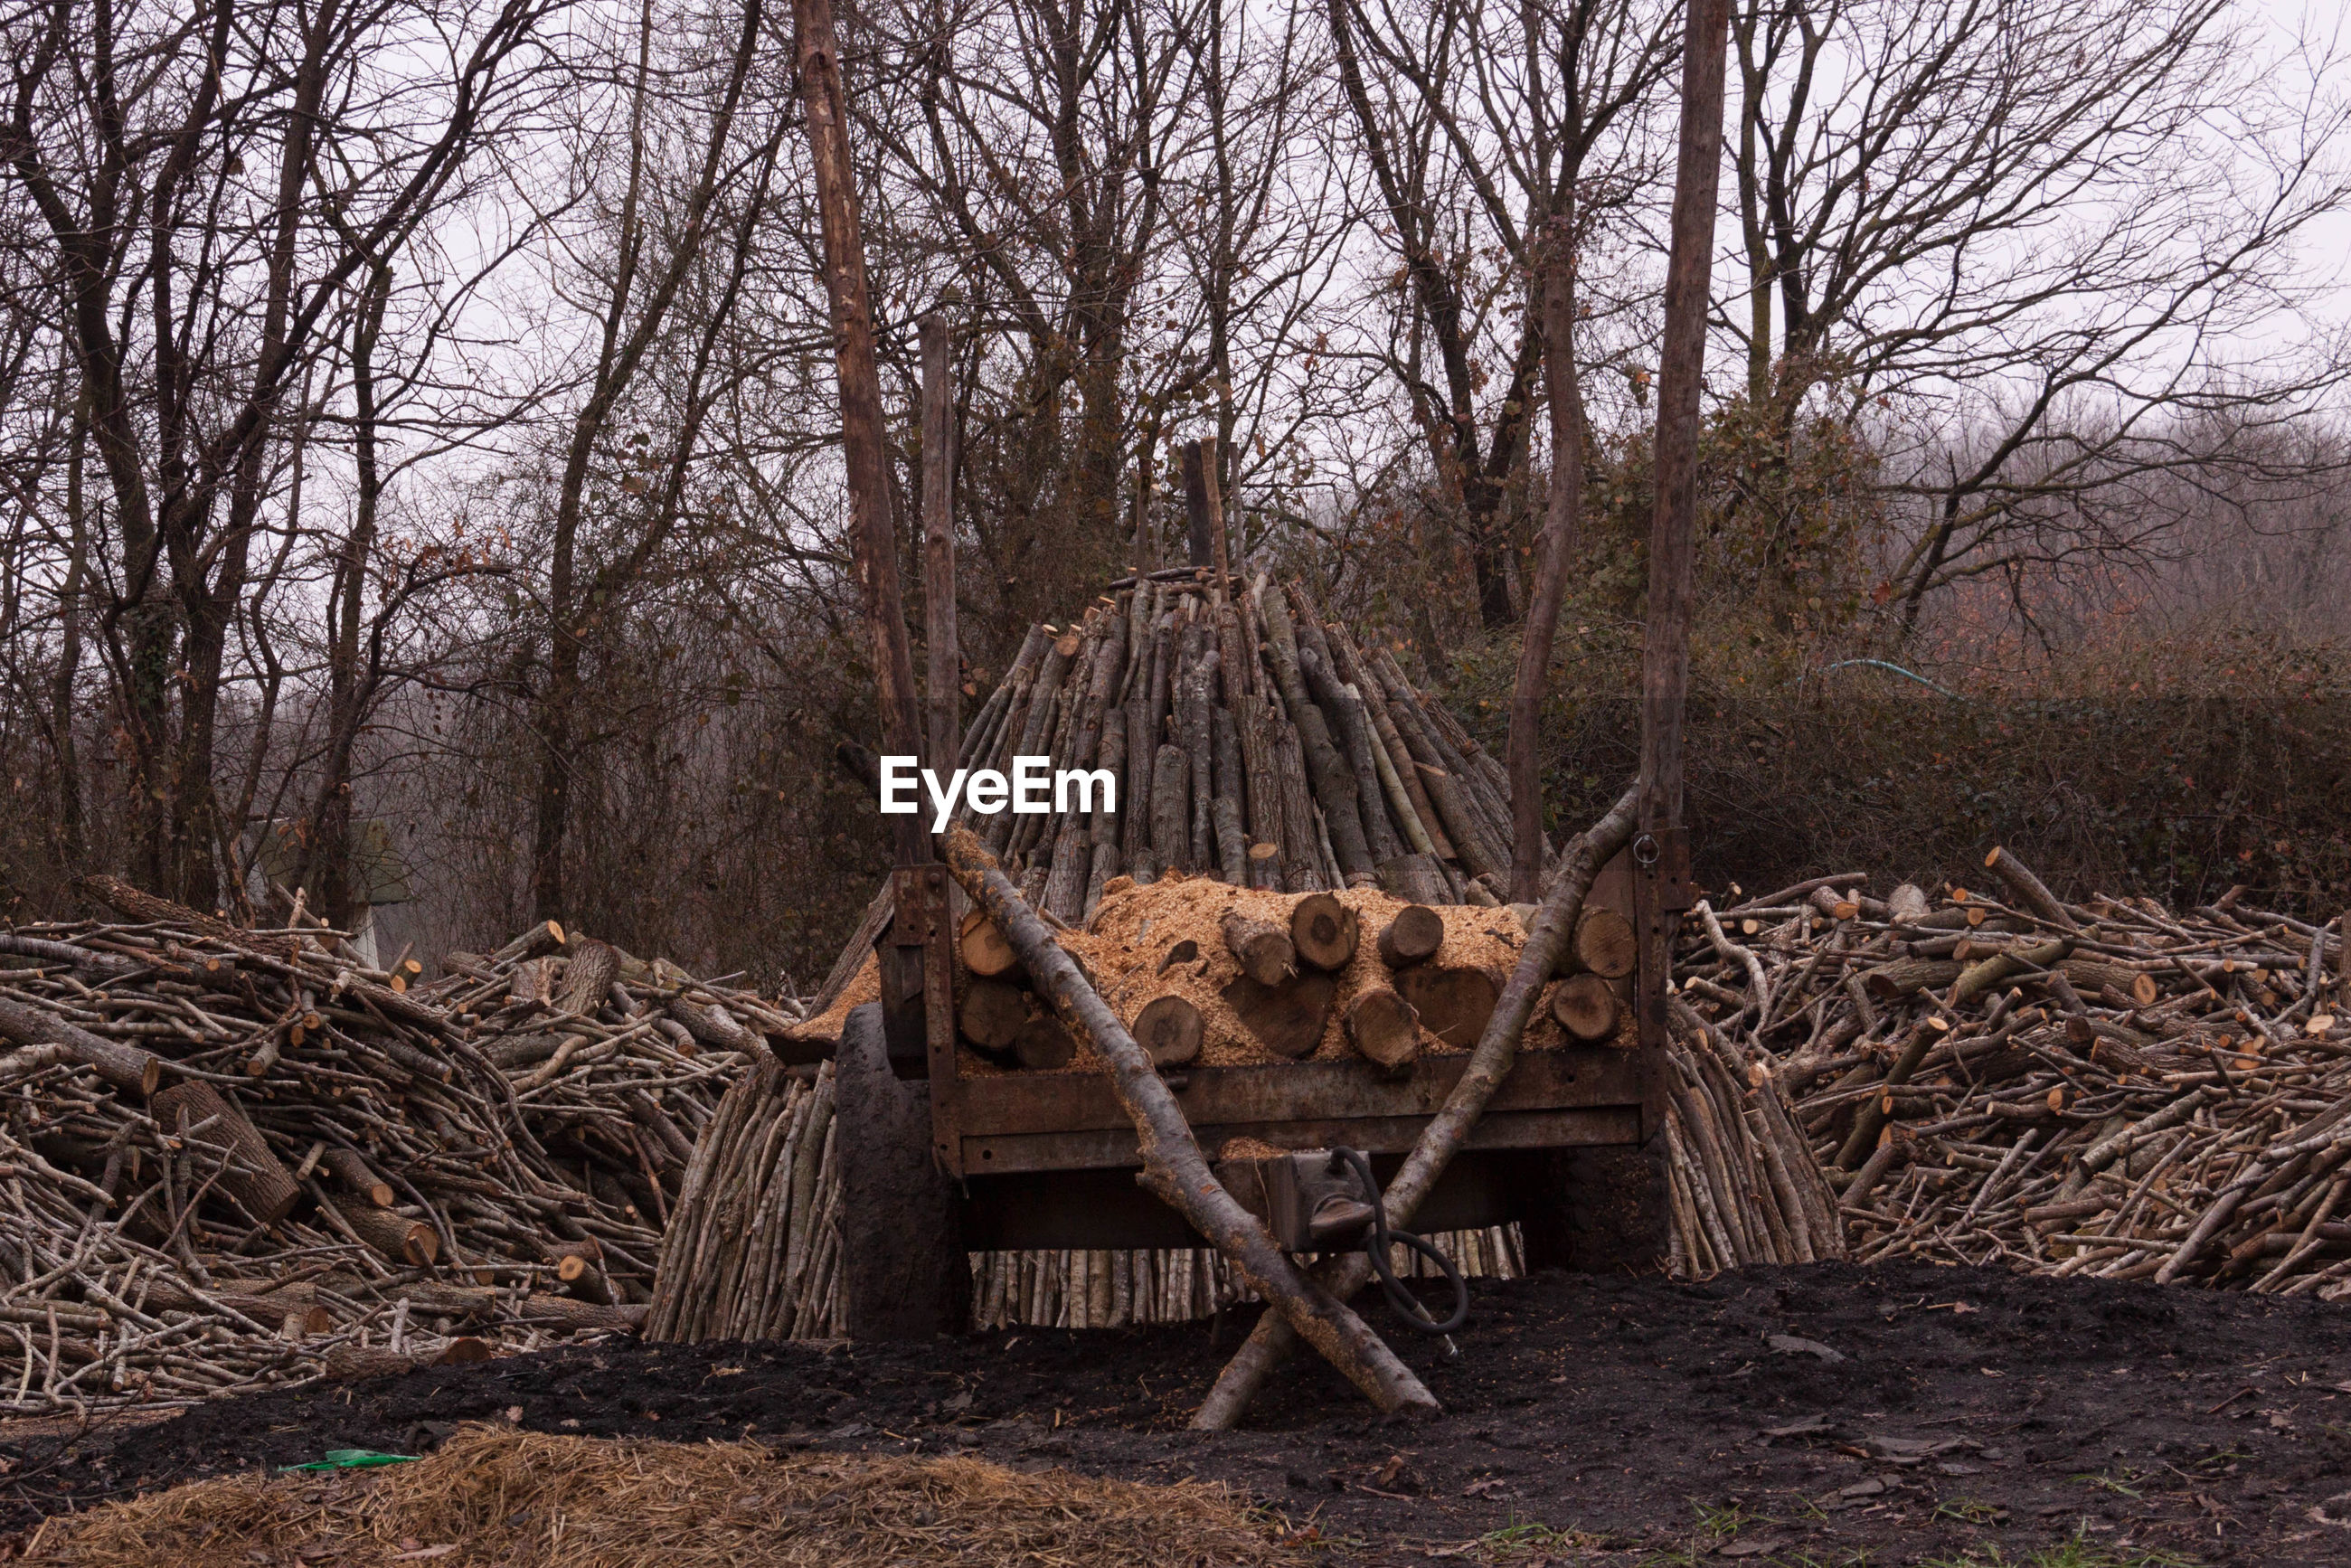 Firewood on cart against bare trees at forest